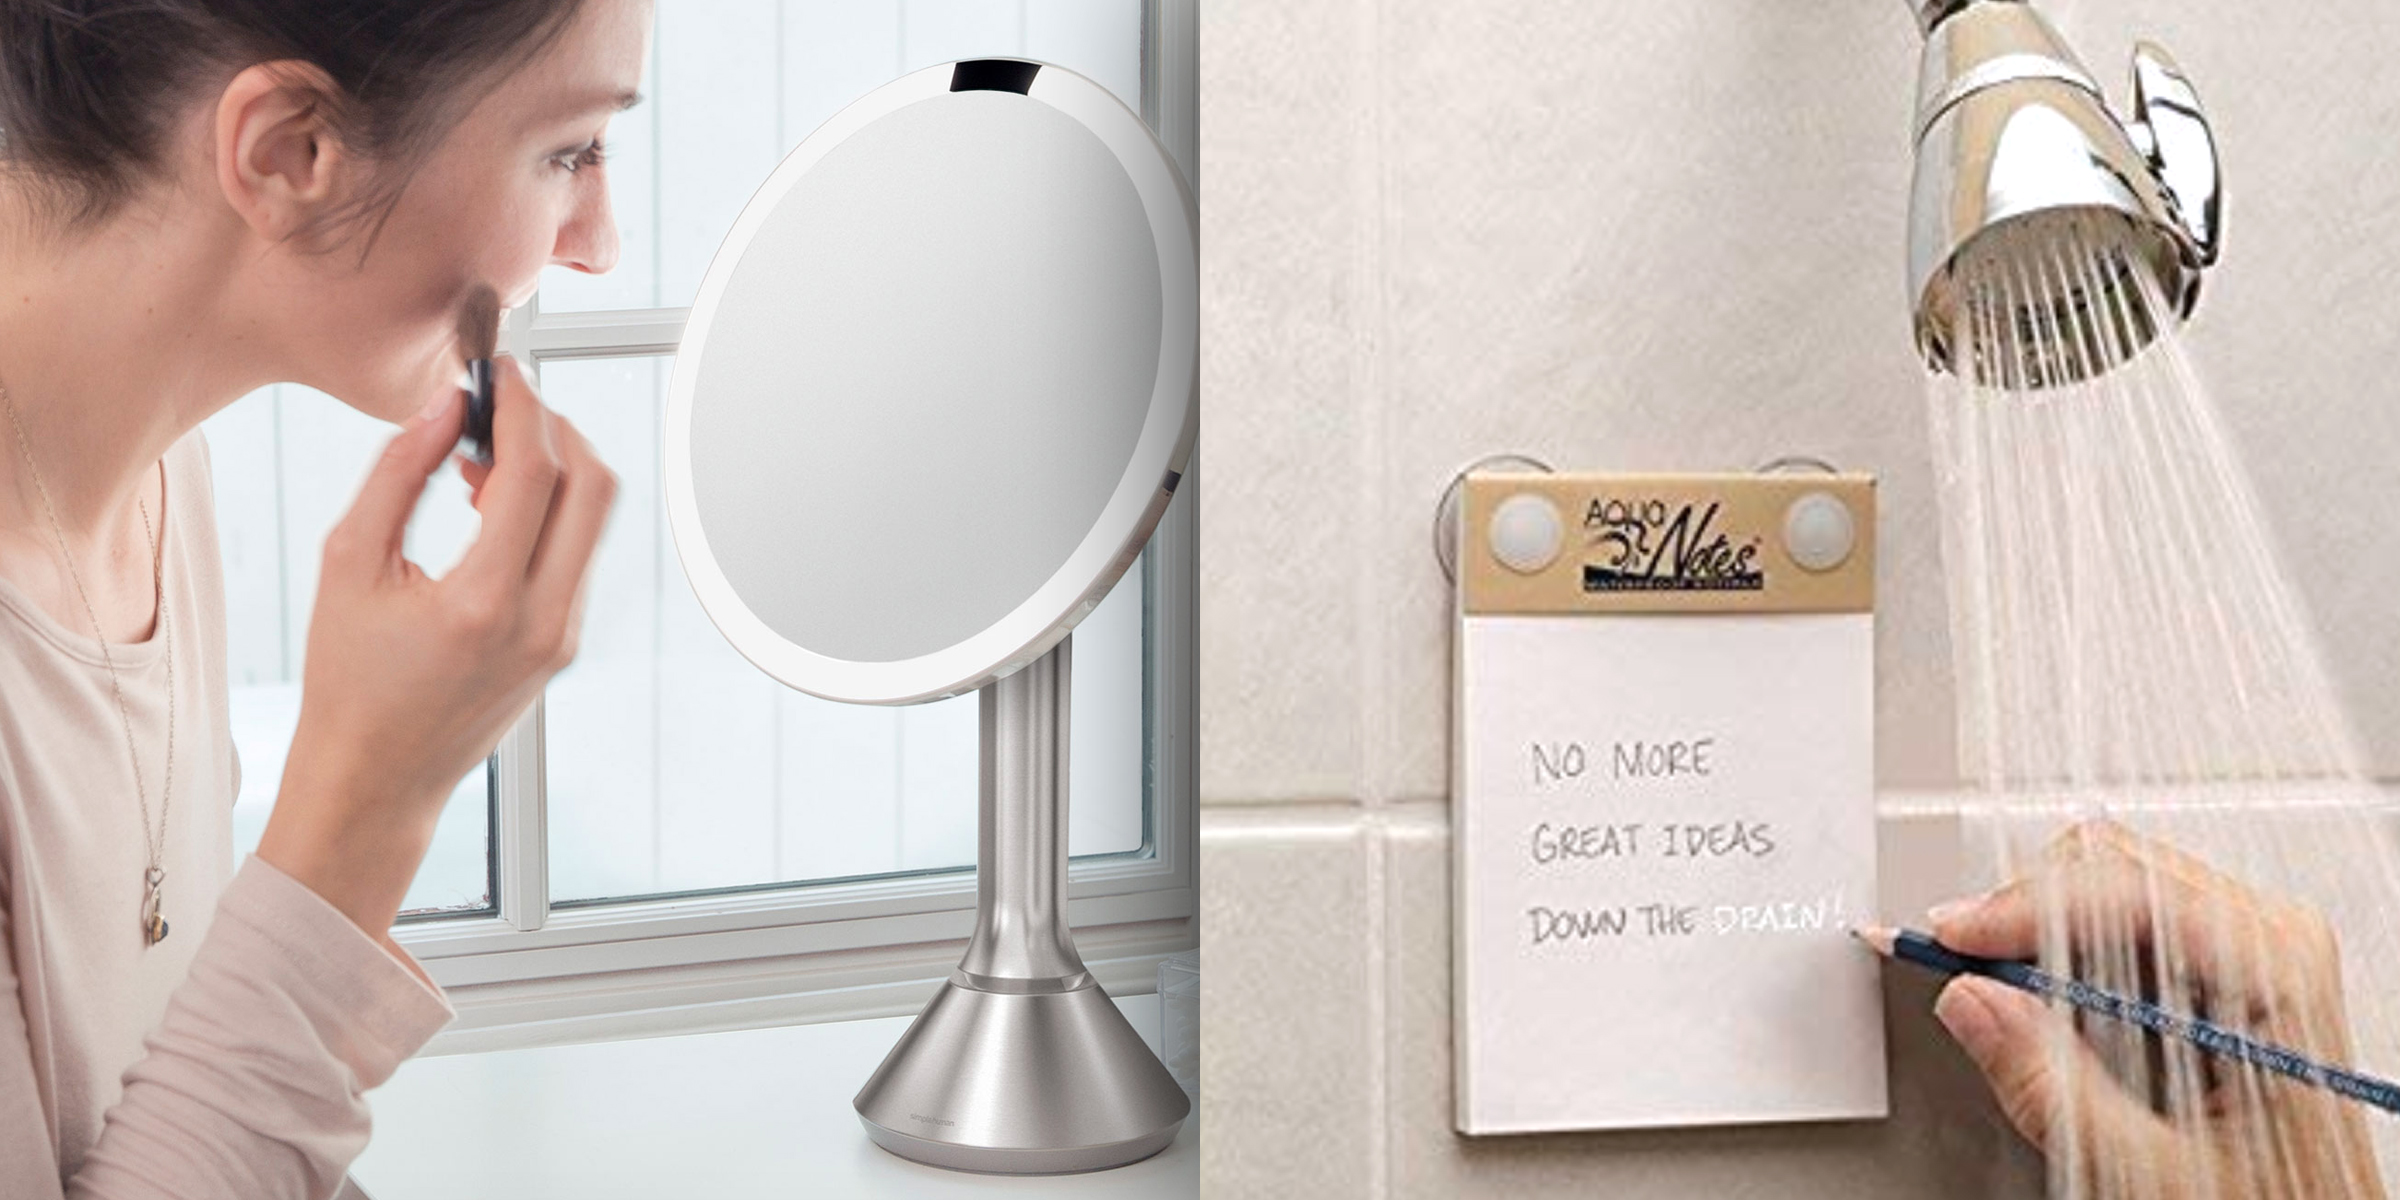 12 bathroom gadgets to make your life easier